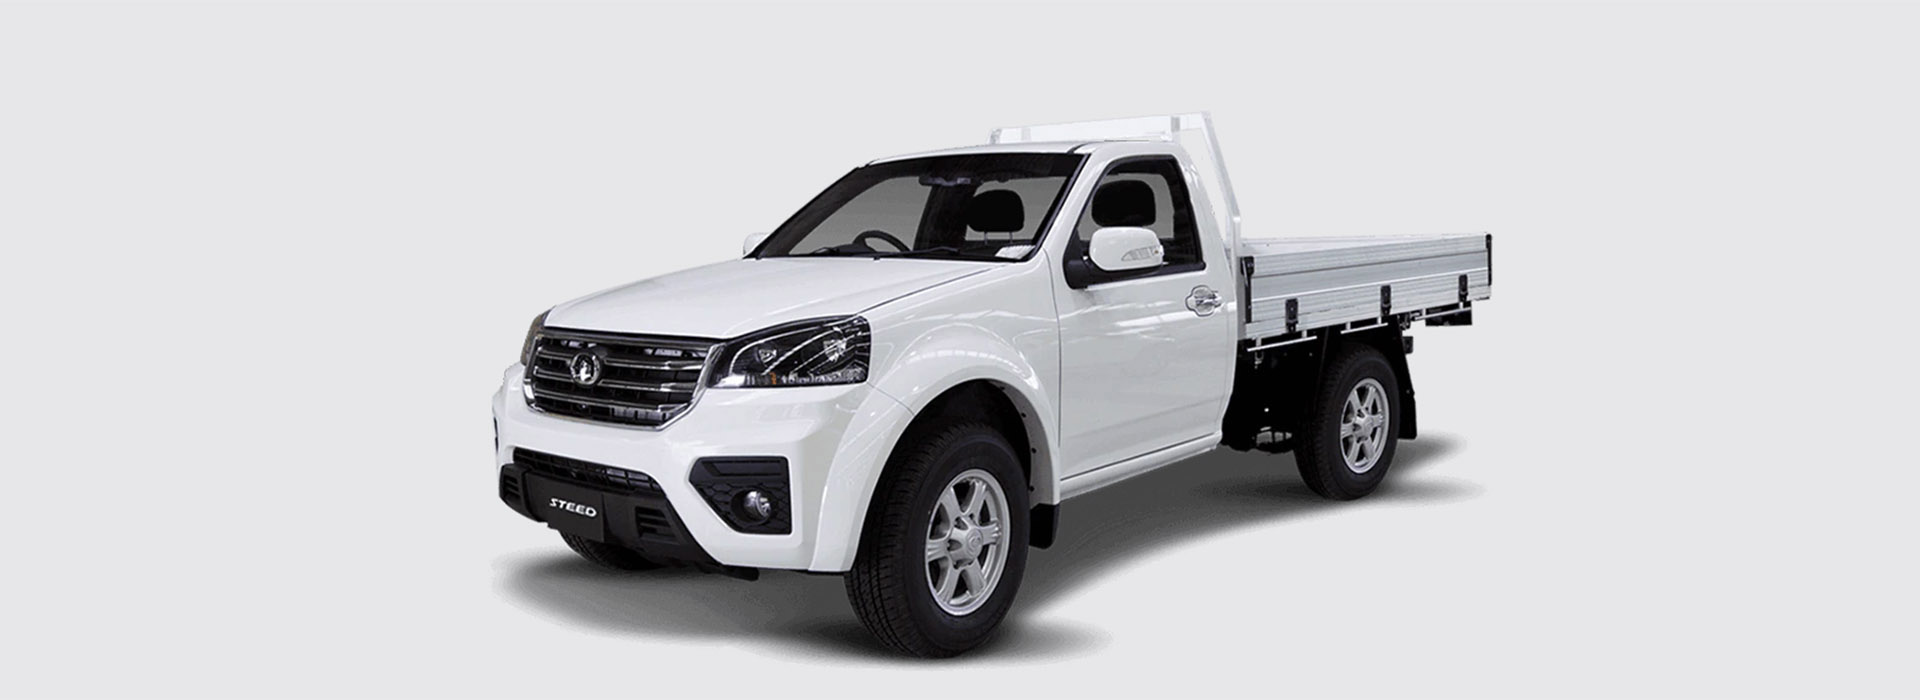 GWM Steed 4x2 and 4x4 Image